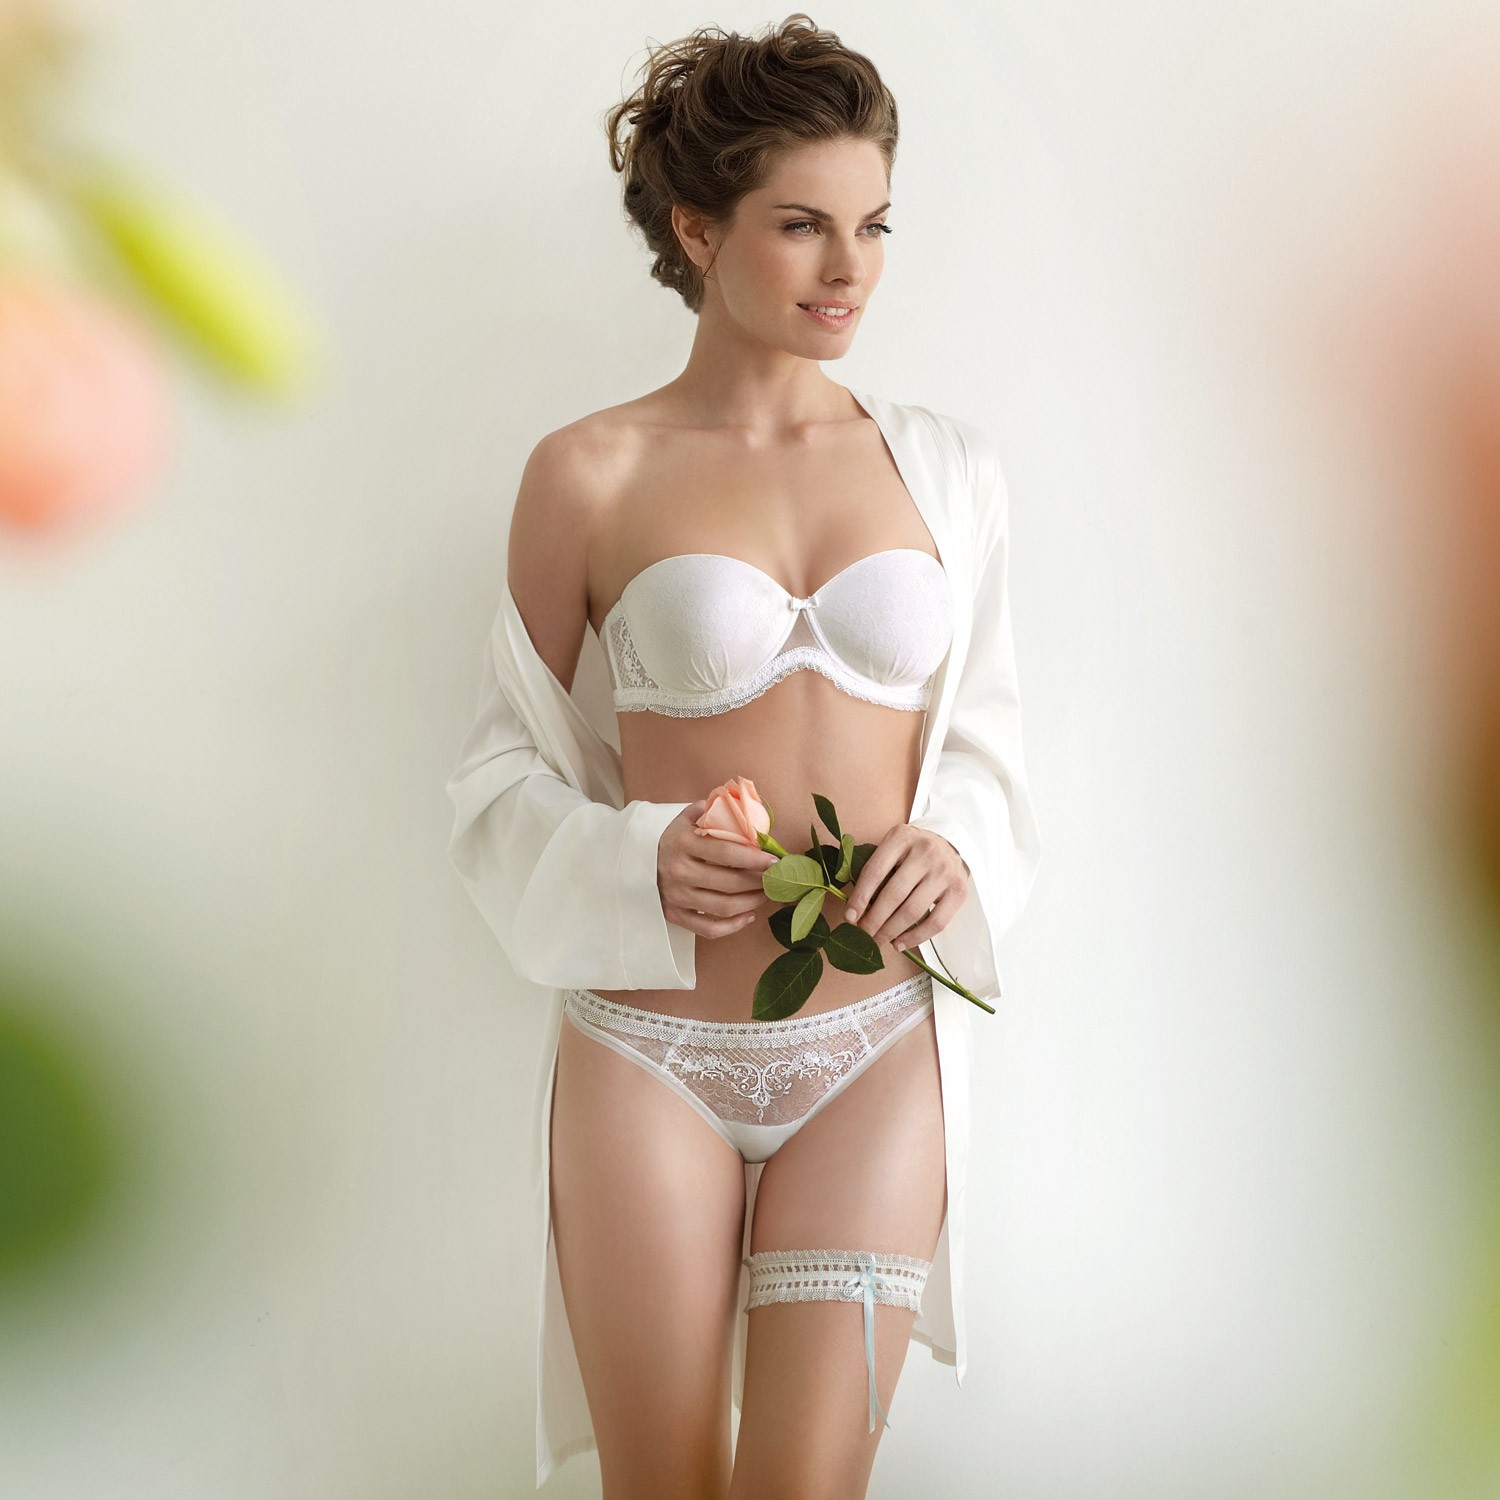 lingerie mariage ivoire alexandra - Guepiere Mariage